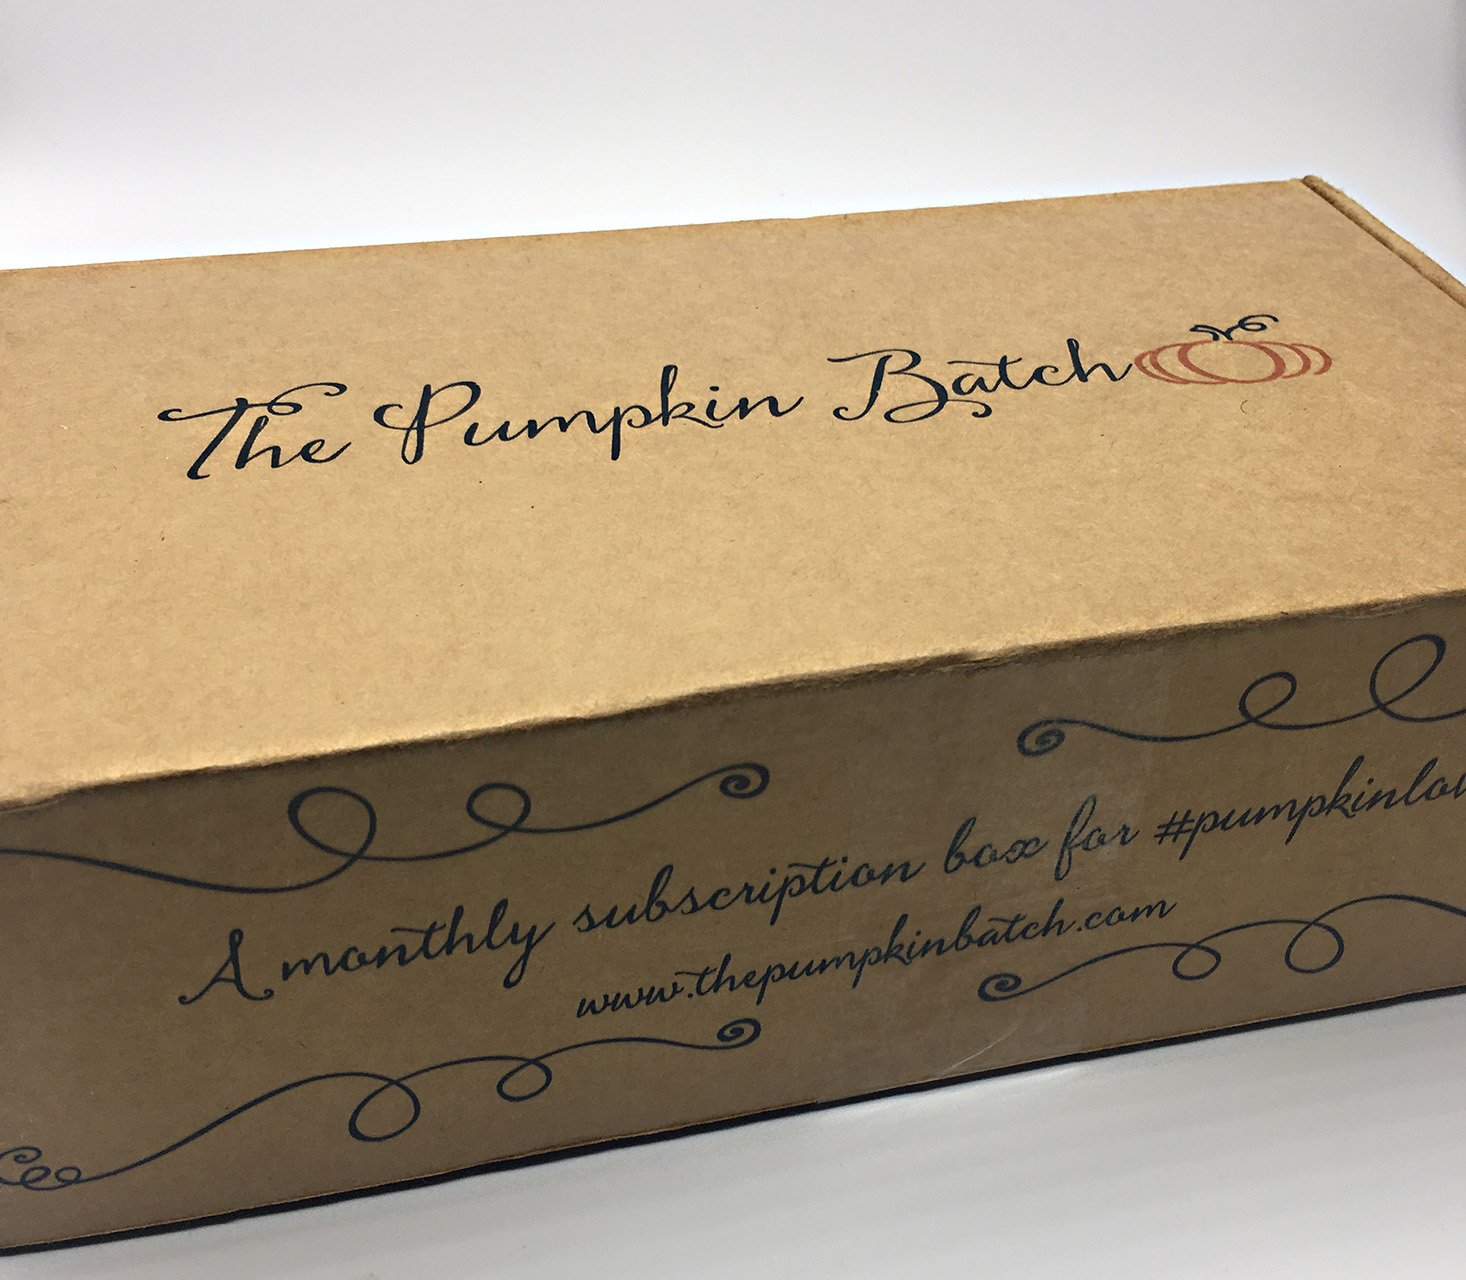 pumpkin-batch-november-2016-box